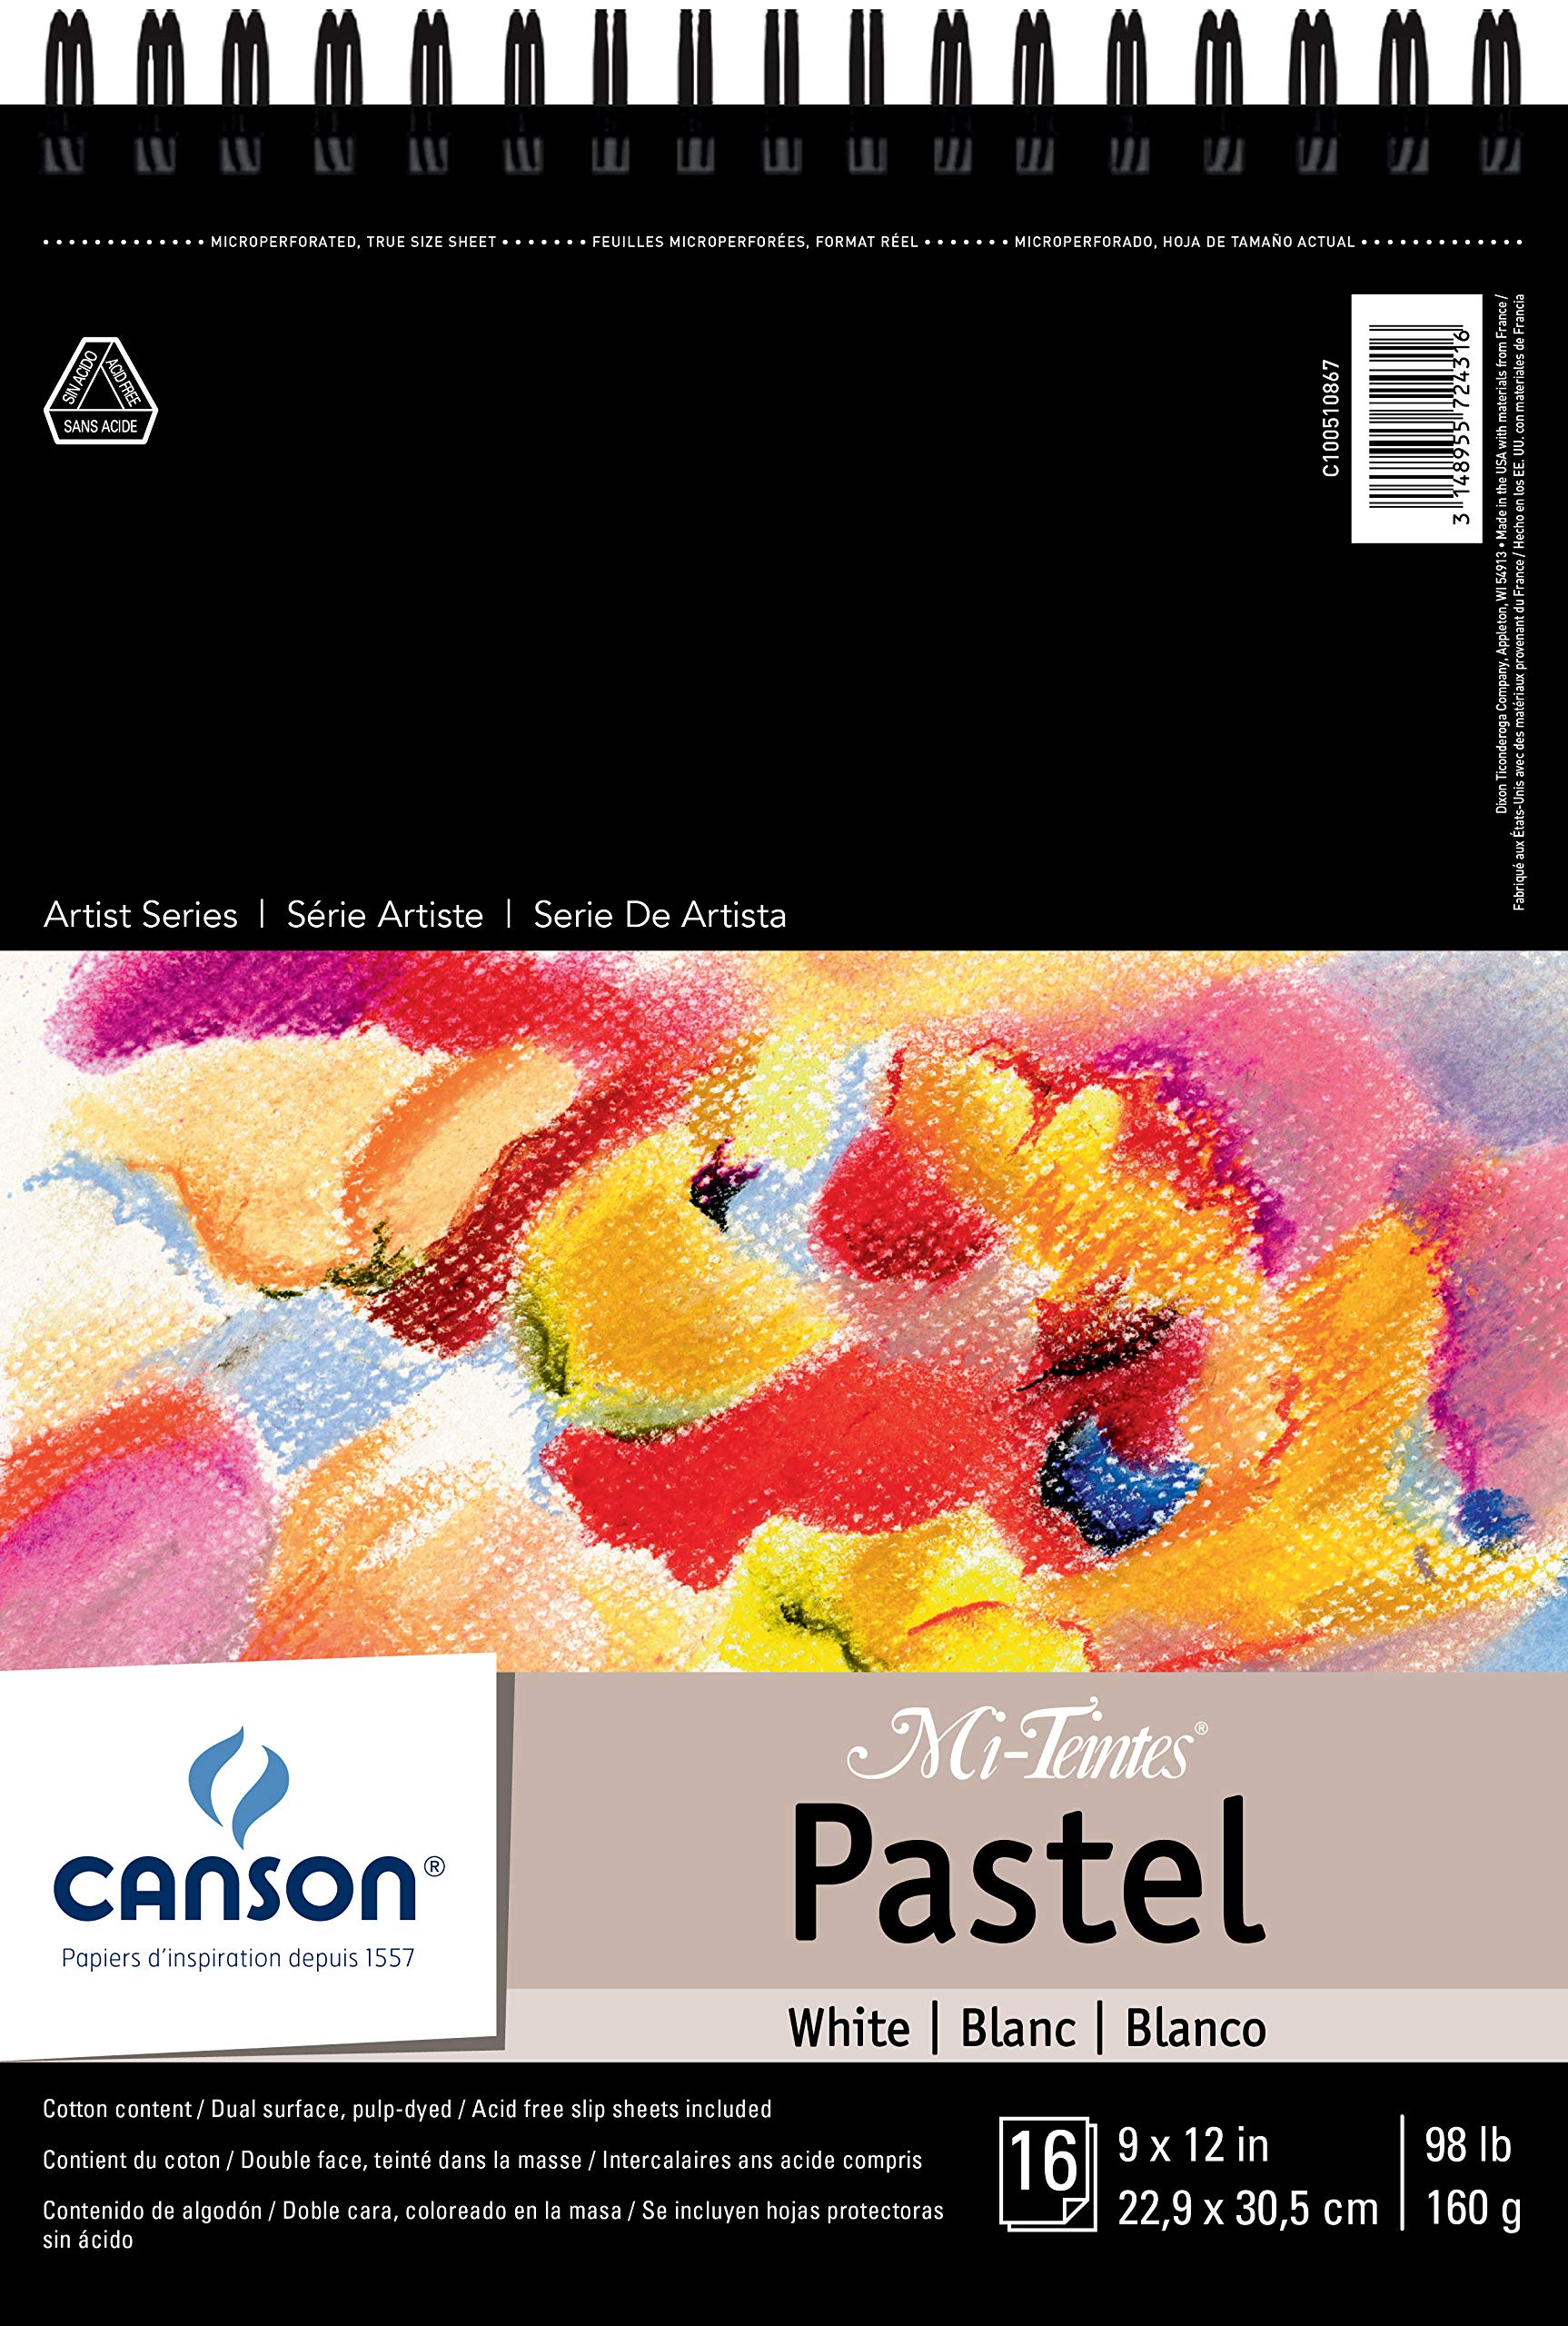 Canson Mi-Teintes Pastel Paper Pad, White with Glassine, Dual Sided Light and Heavy Texture, Top Wire Bound, 98 Pound, 9 x 12 Inch, White, 16 Sheets by Canson